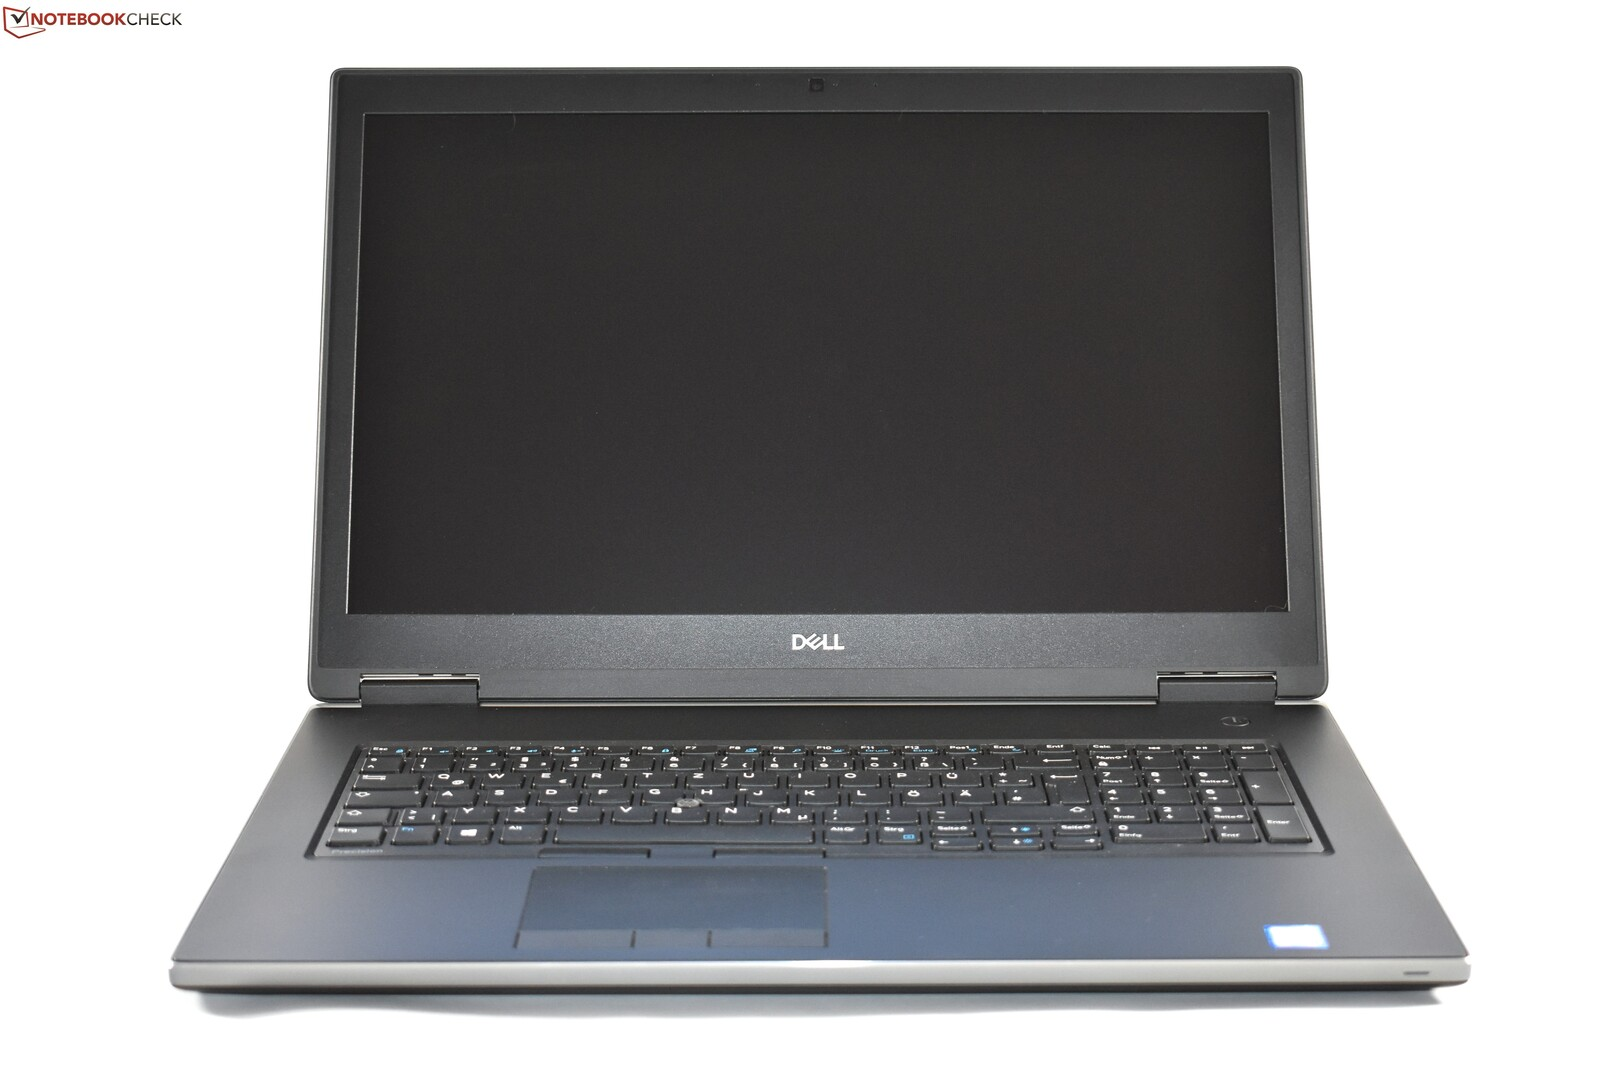 DRIVERS FOR DELL PRECISION 610 MT